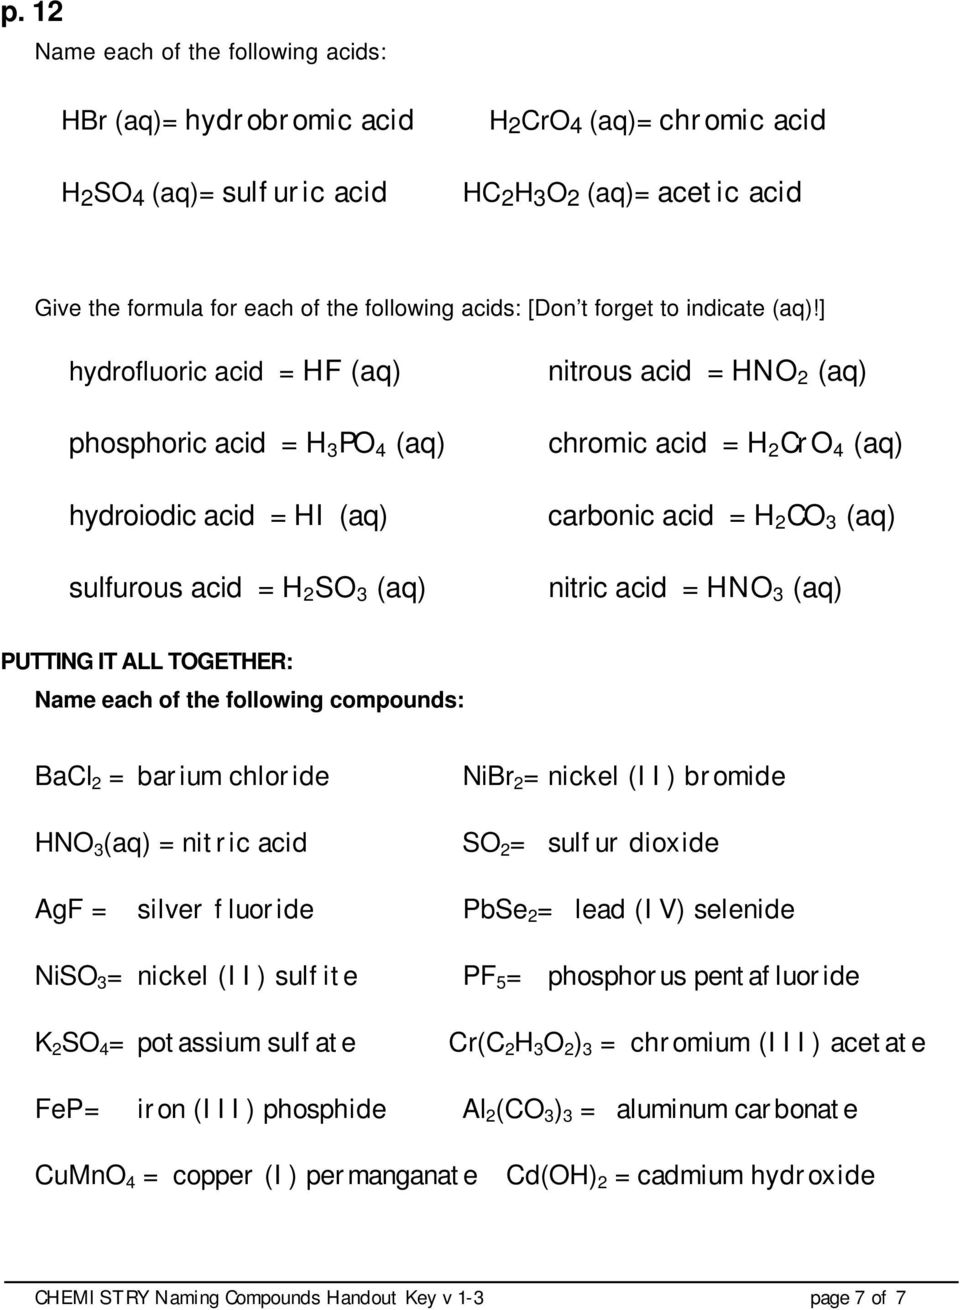 worksheet Naming Compounds And Writing Formulas Worksheet naming compounds handout key pdf hydrofluoric acid hf aq phosphoric h 3 po 4